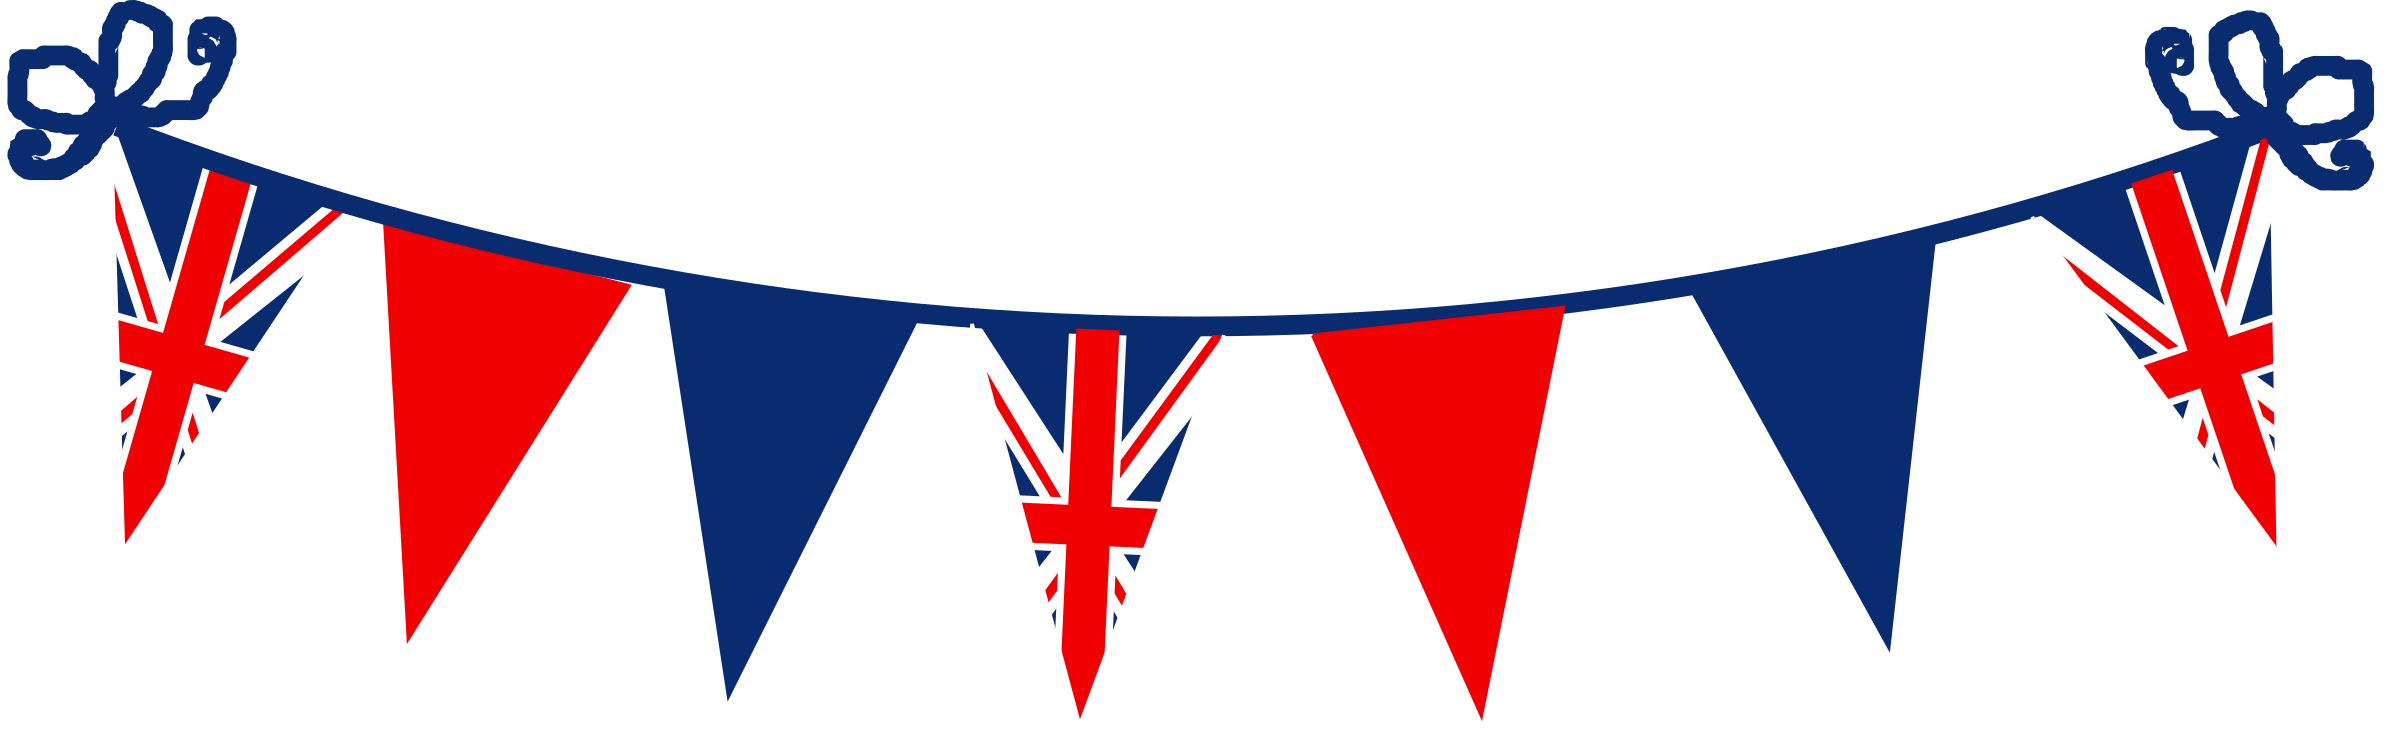 Festival clipart bunting.  collection of png